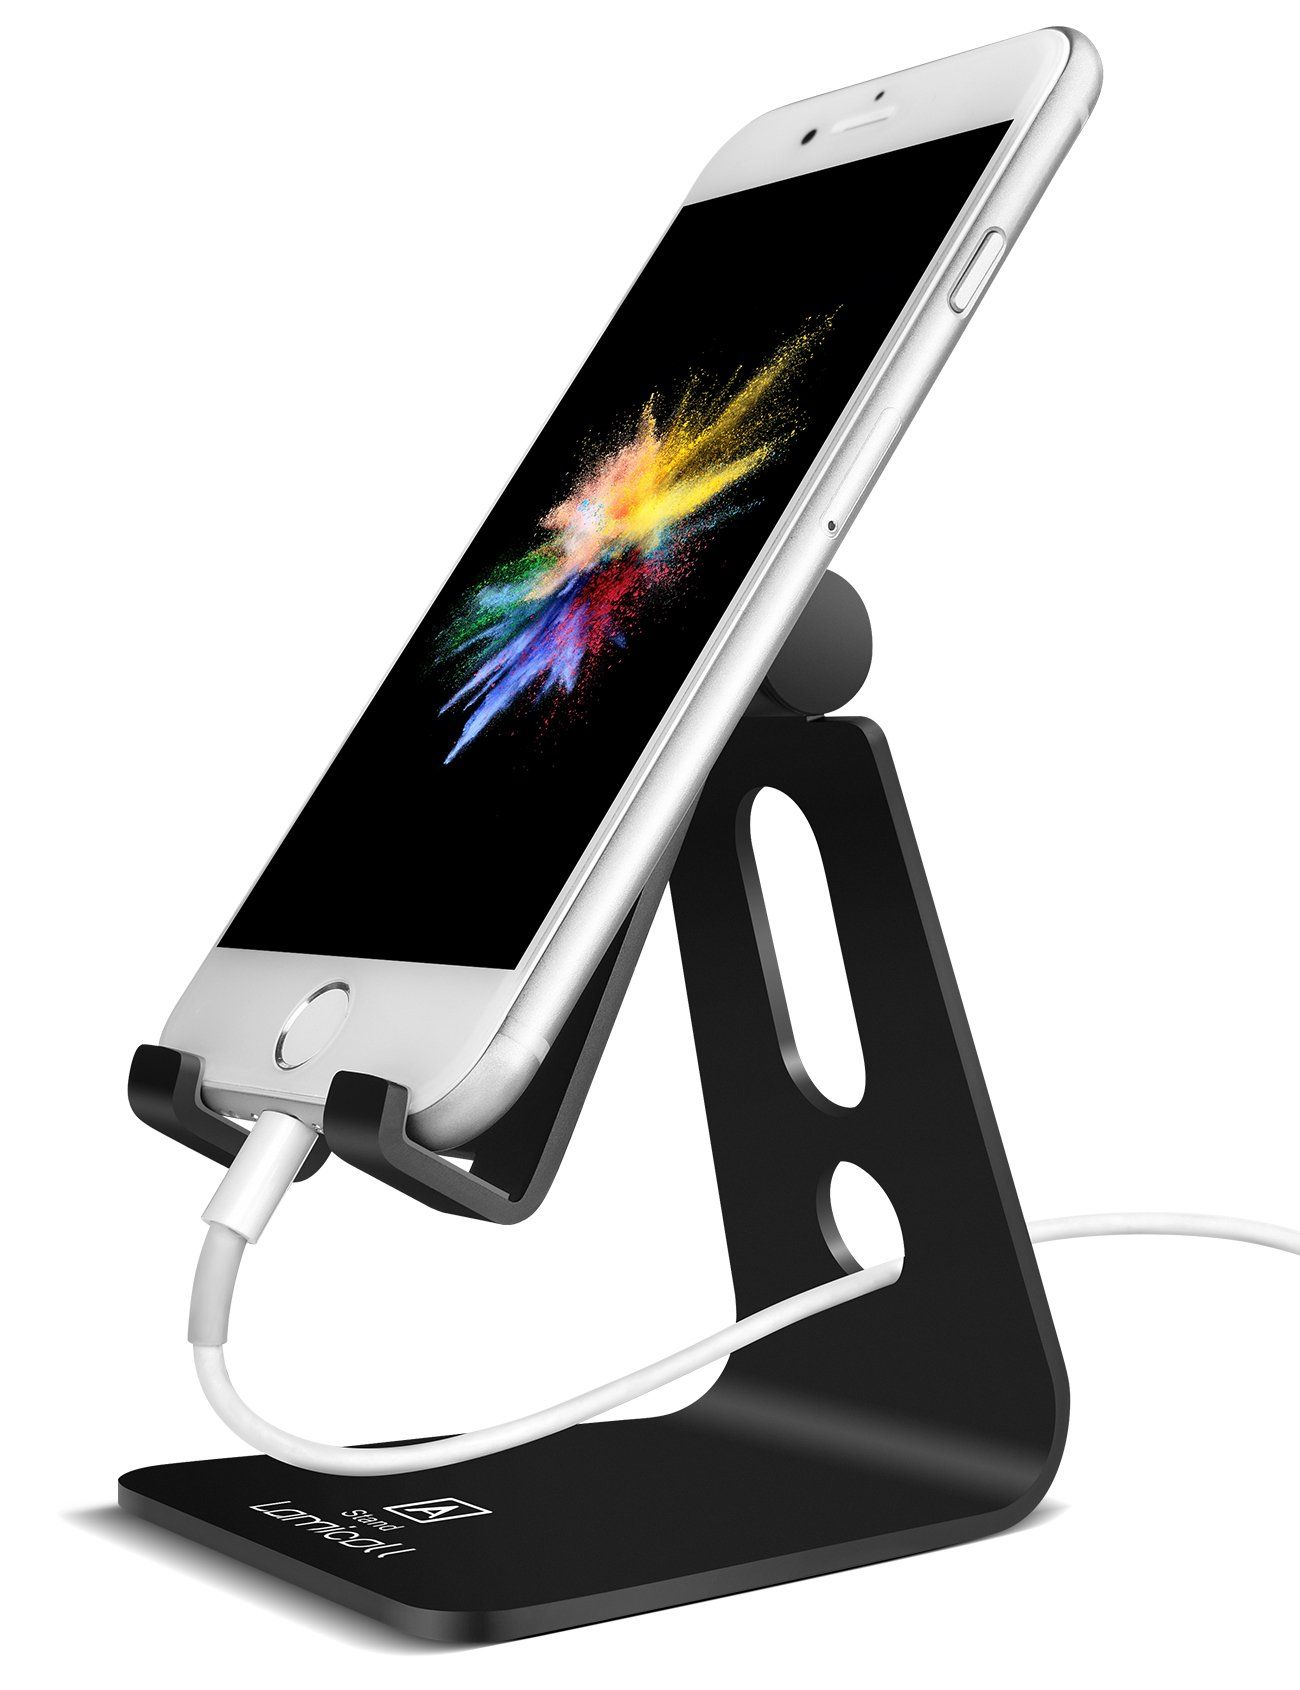 eiqg itm air dock holder stand for iphone pad in desk bracket plus station mobile mini i charge iwatch cradle phone